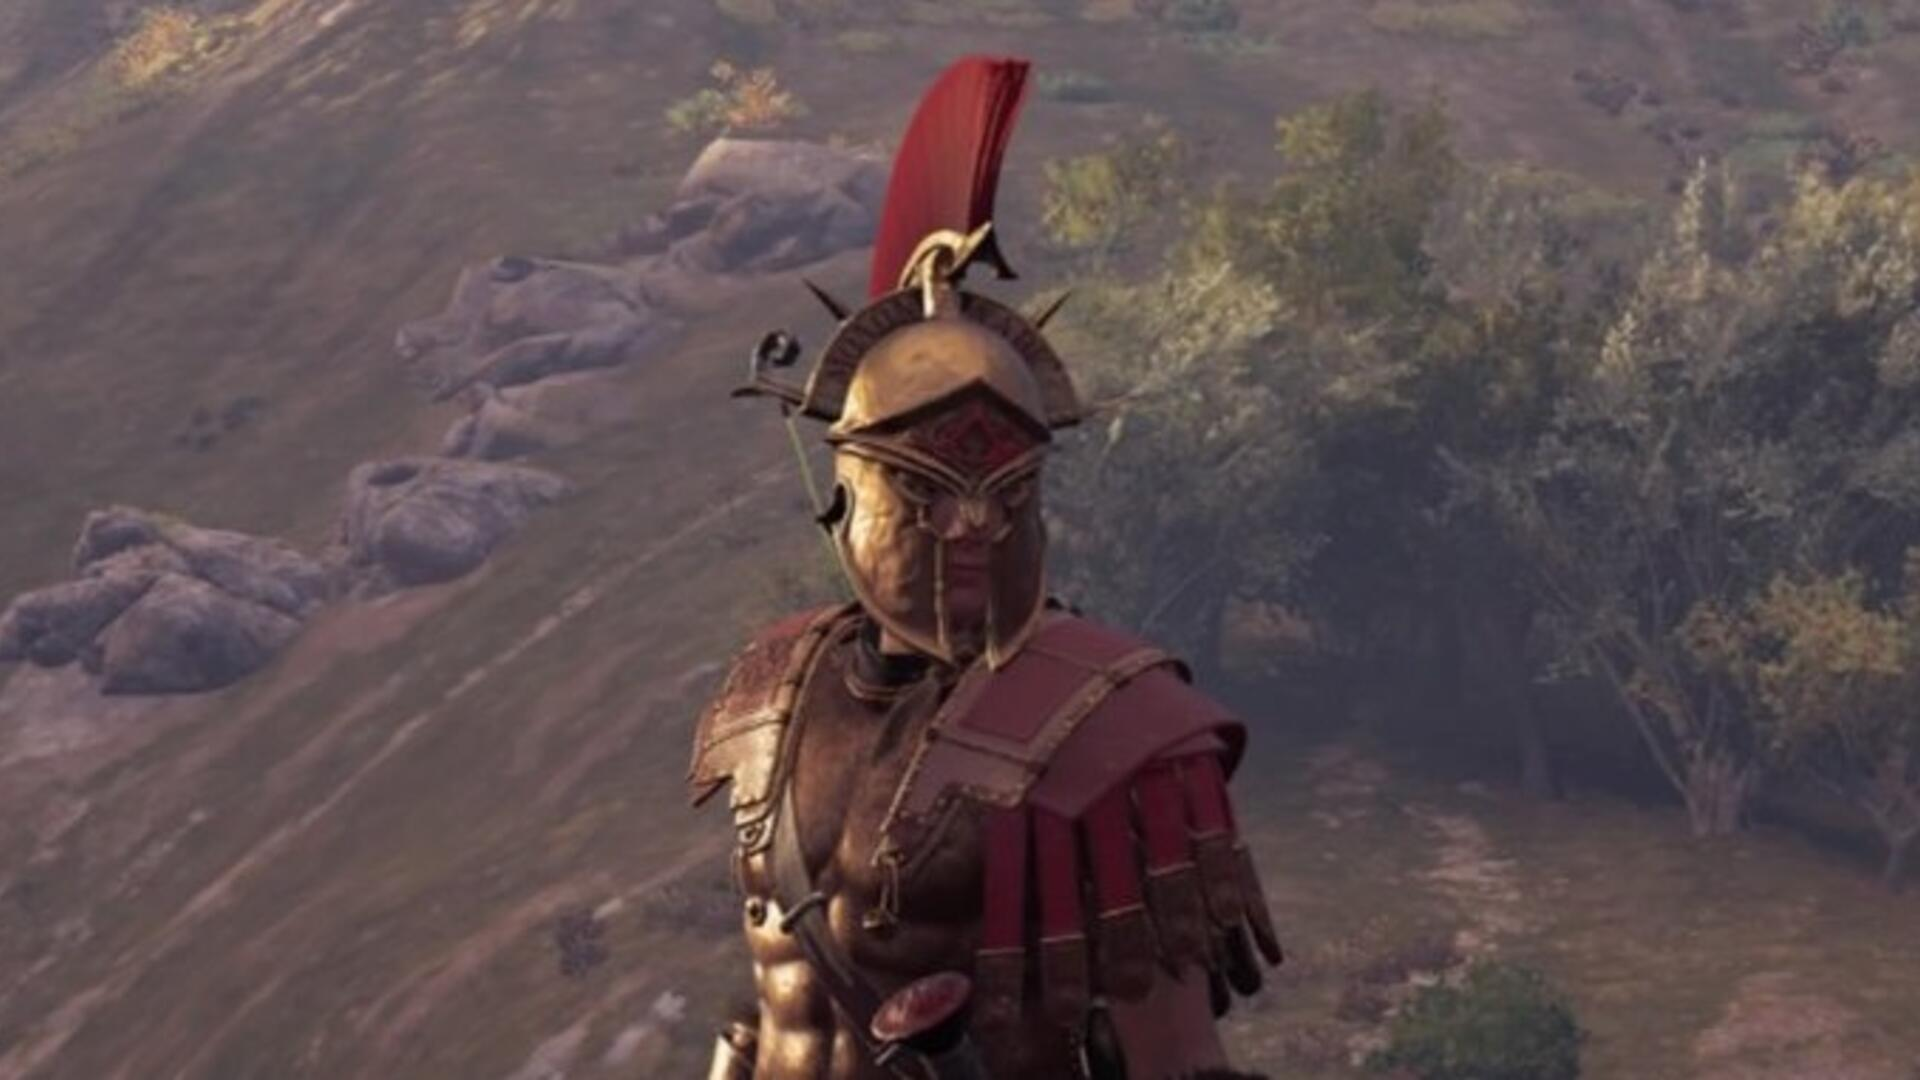 Assassin's Creed Odyssey Spartan War Hero Armor - How to Unlock the Spartan War Hero Legendary Armor Set